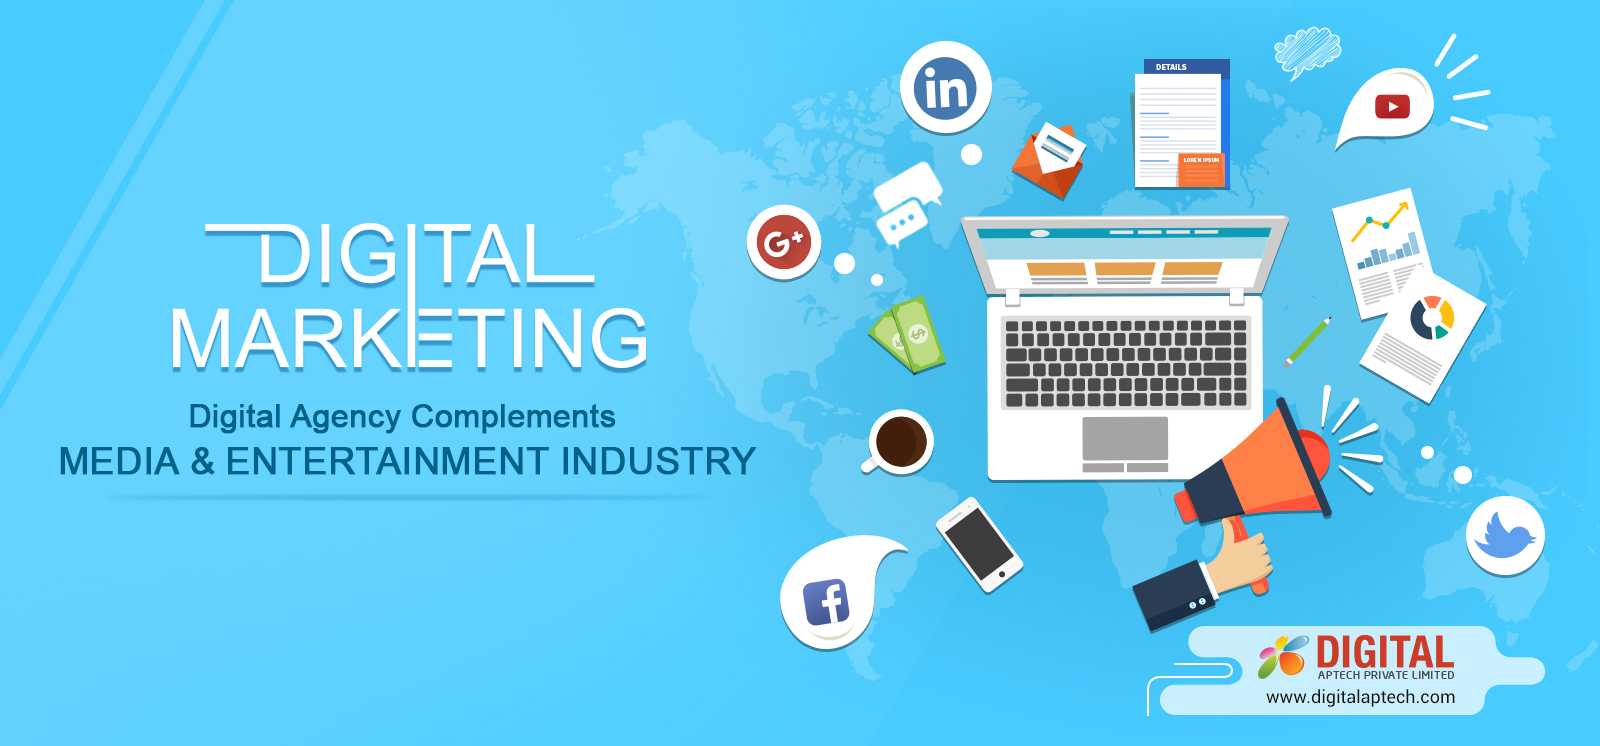 Why the Media and Entertainment Industry Needs a Digital Agency?